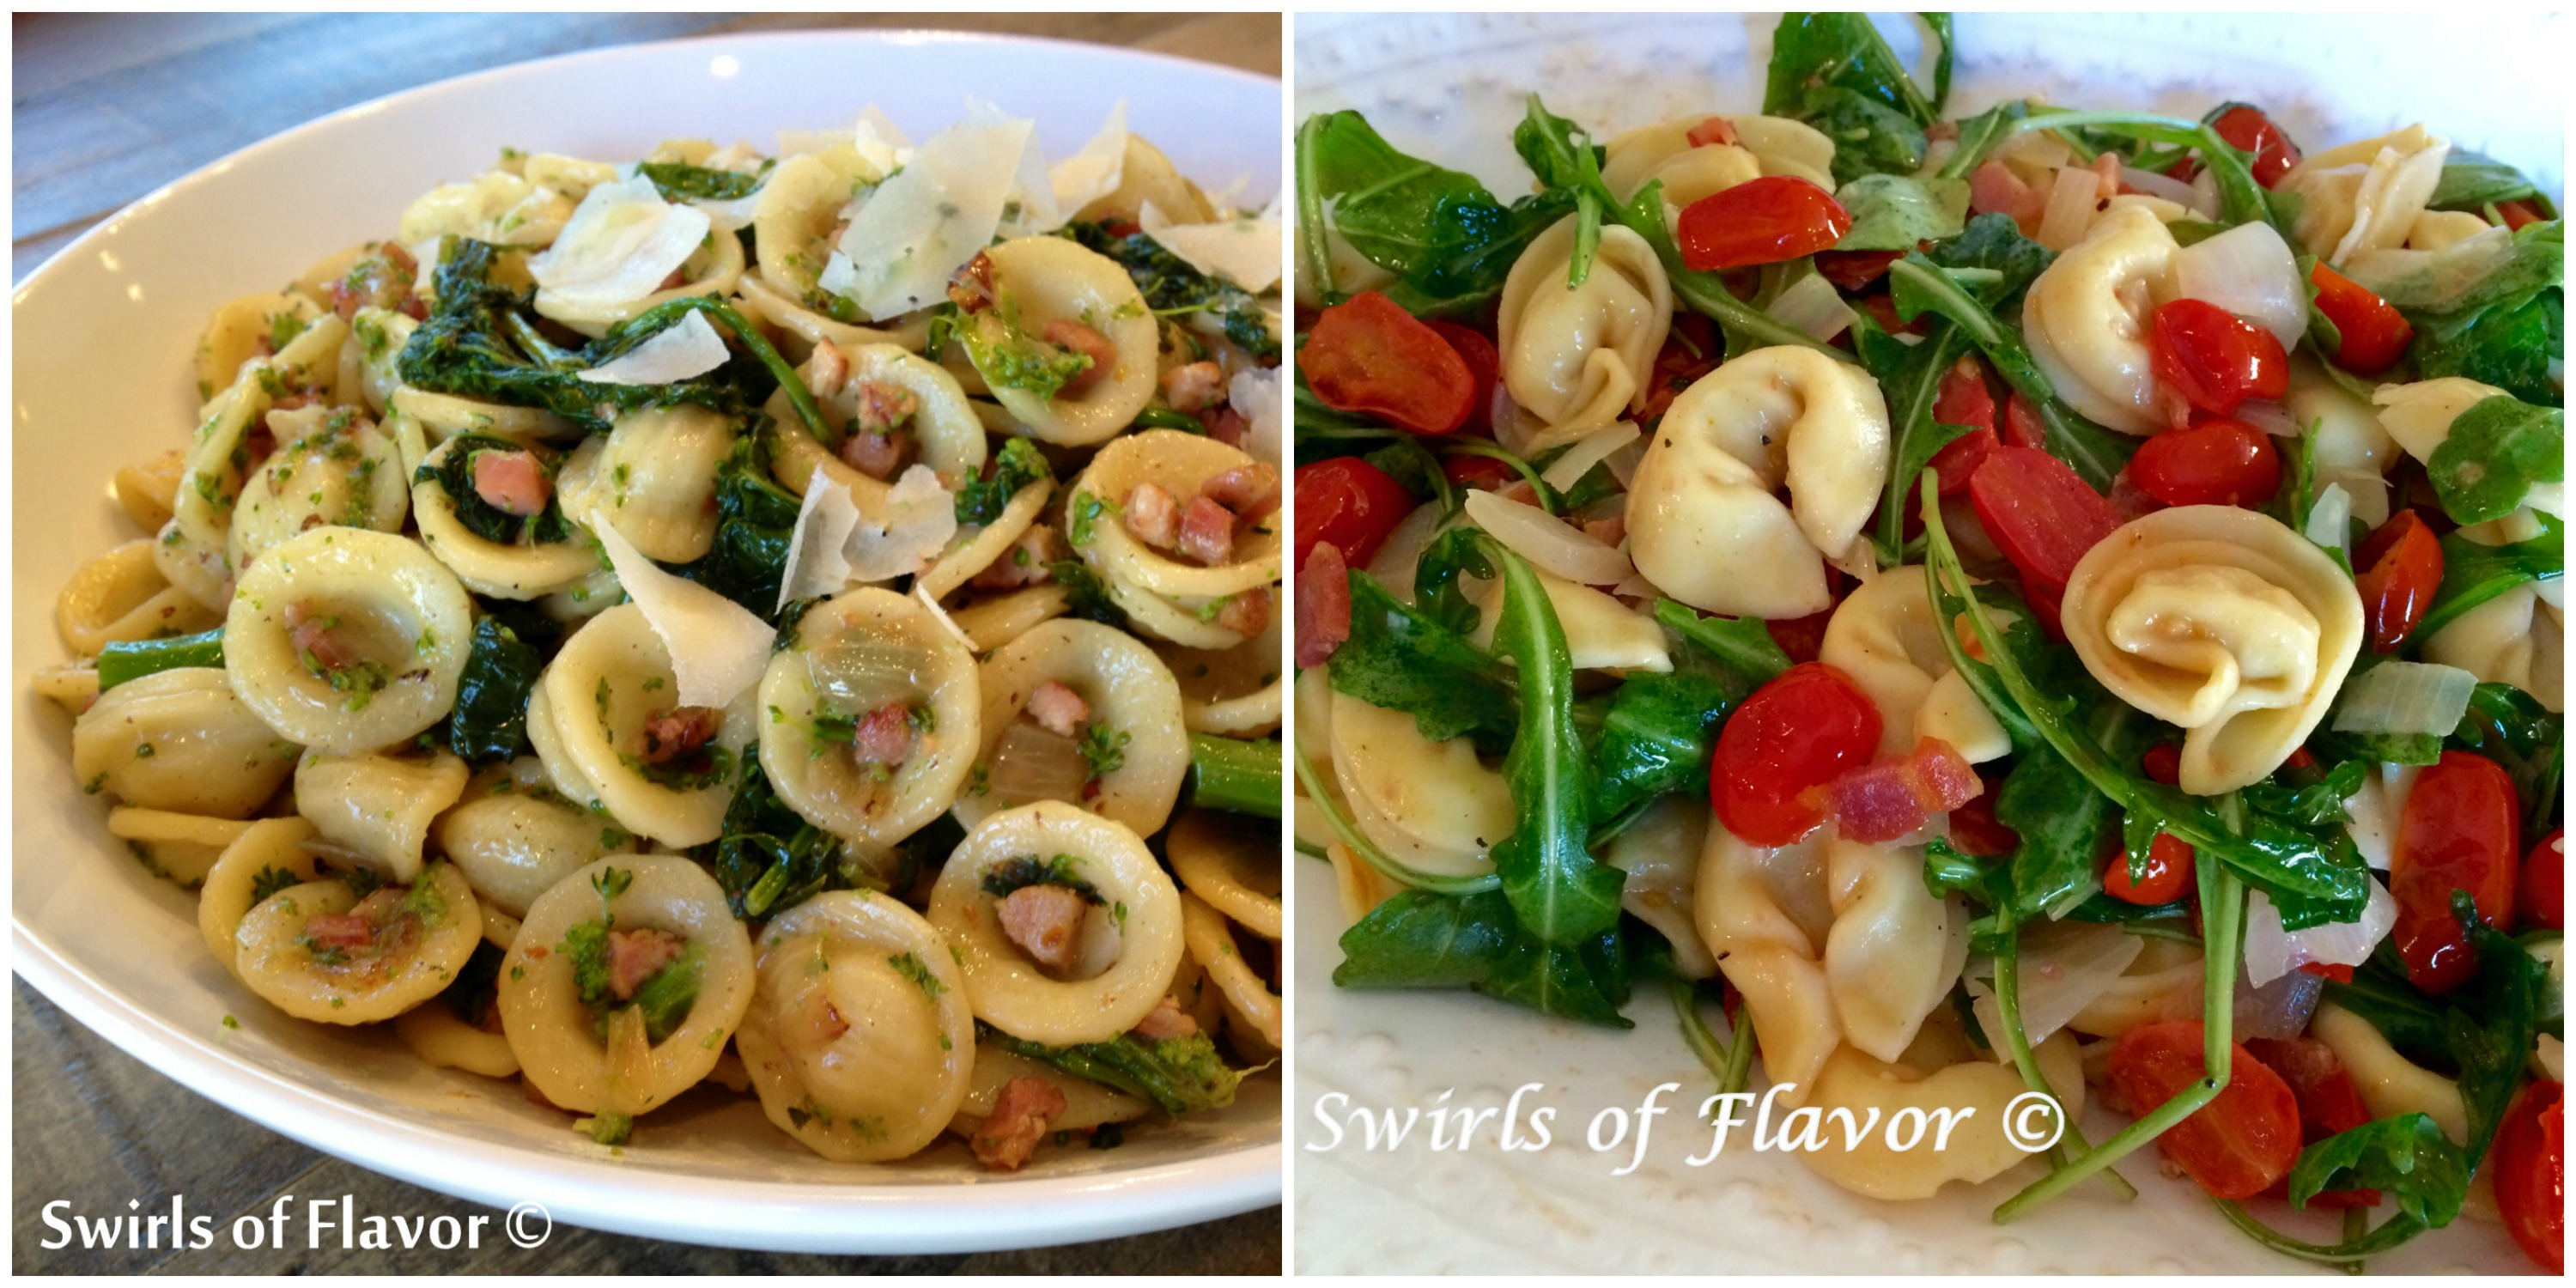 Broccoli Rabe Pancetta Pasta and and tortellini Pasta with Tomatoes